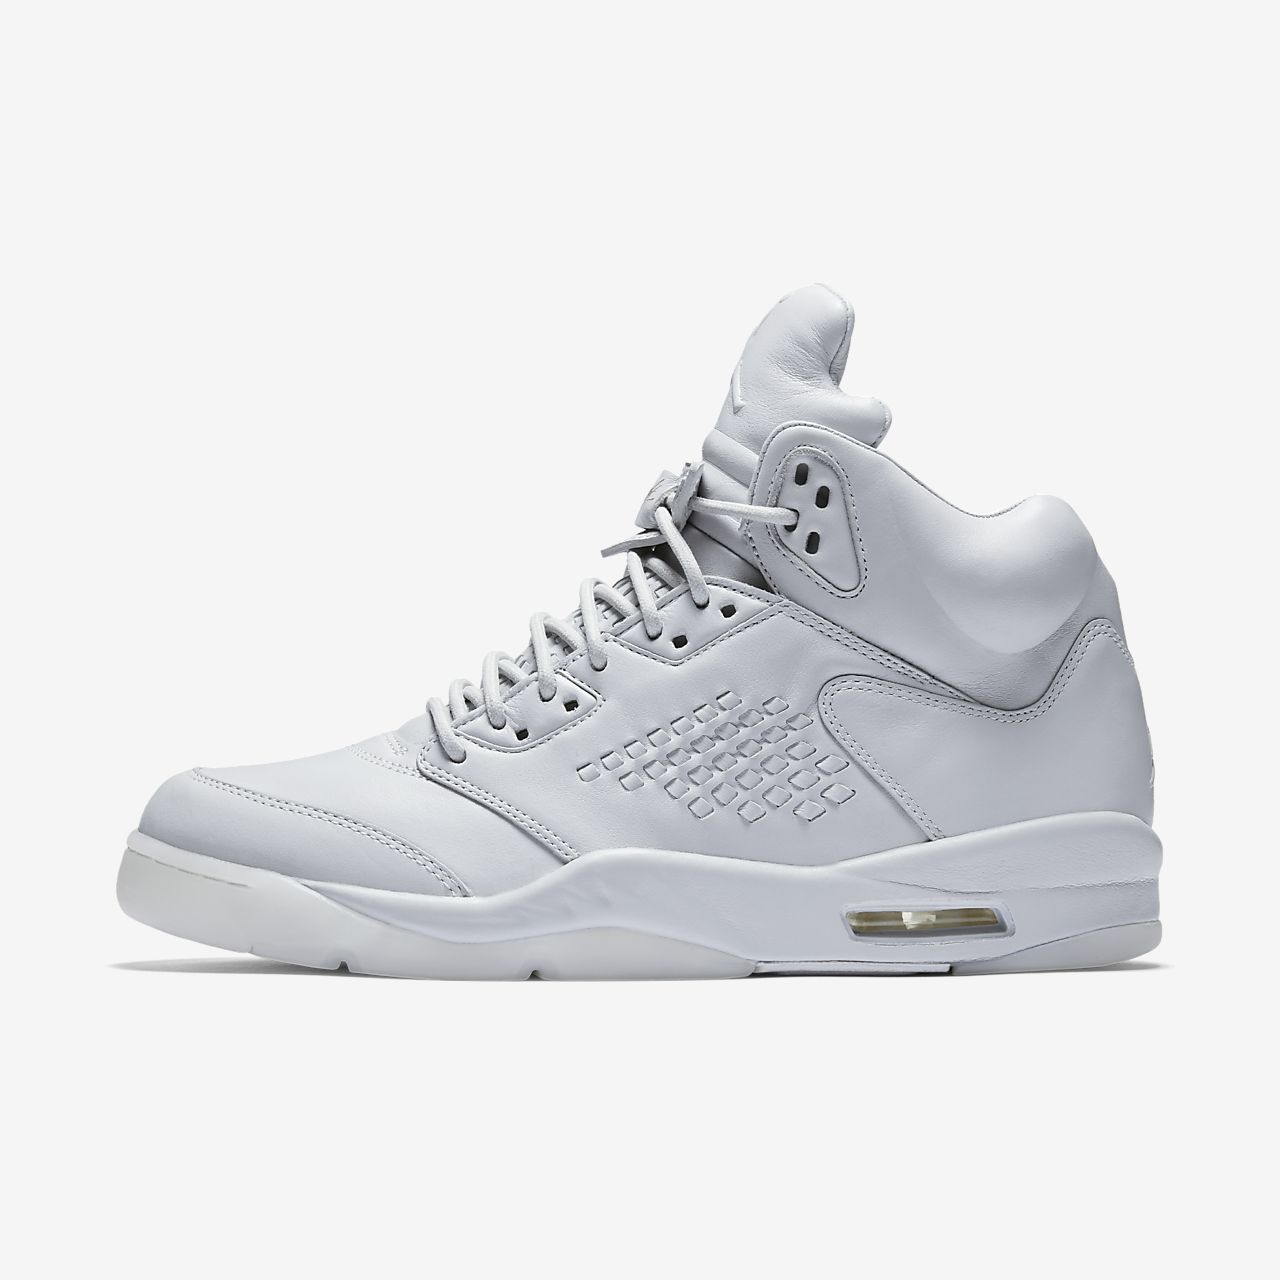 c20038c8b70 Air Jordan 5 Retro Premium Men's Shoe. Nike.com RO